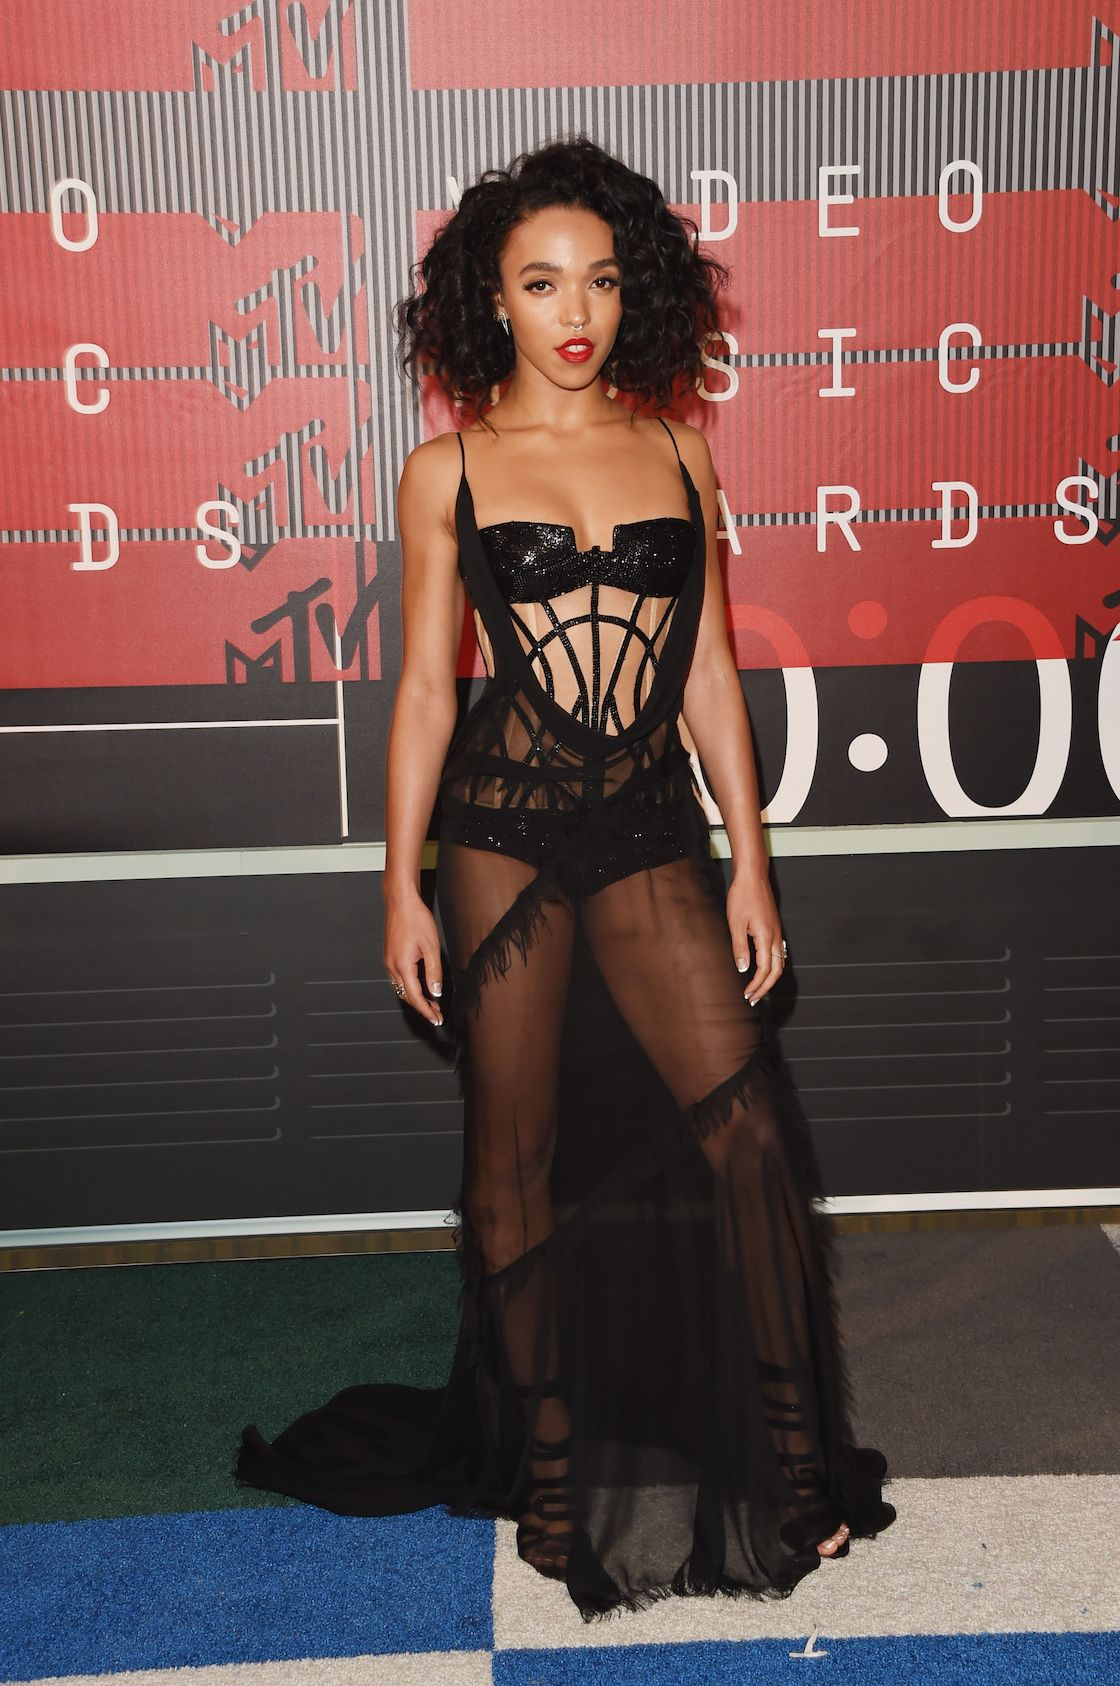 FKA twigs is perfection in a look from the Fall 2015 #AtelierVersace runway. #VersaceCelebrities